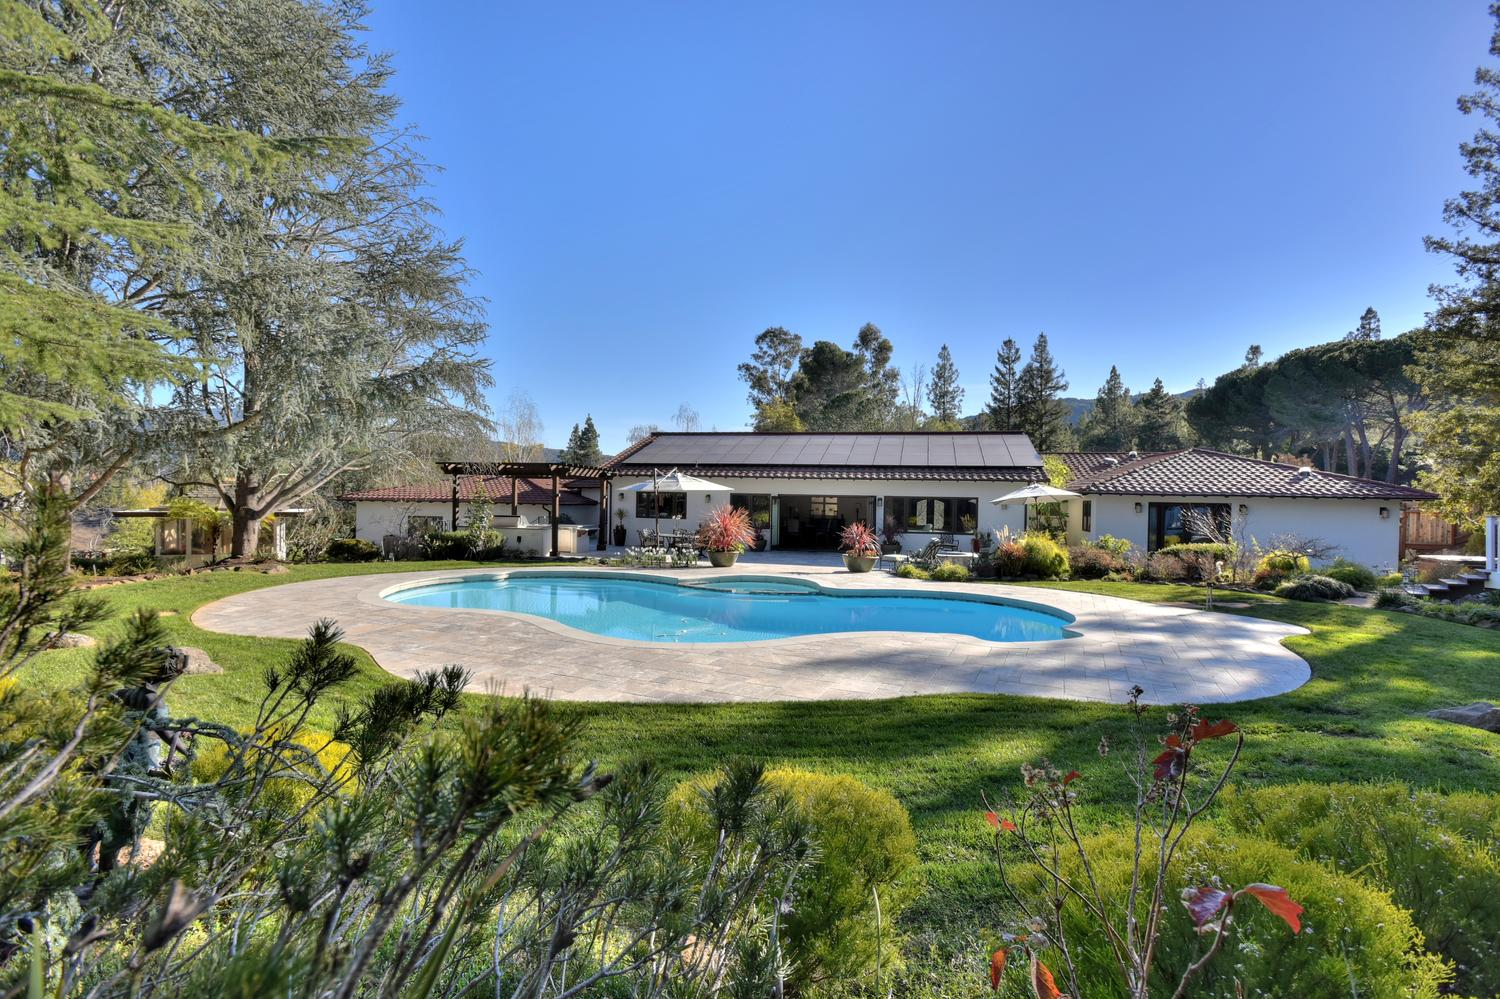 15977 Grandview Dr Monte-large-057-2-Pool and Back of House-1500x1000-72dpi.jpg